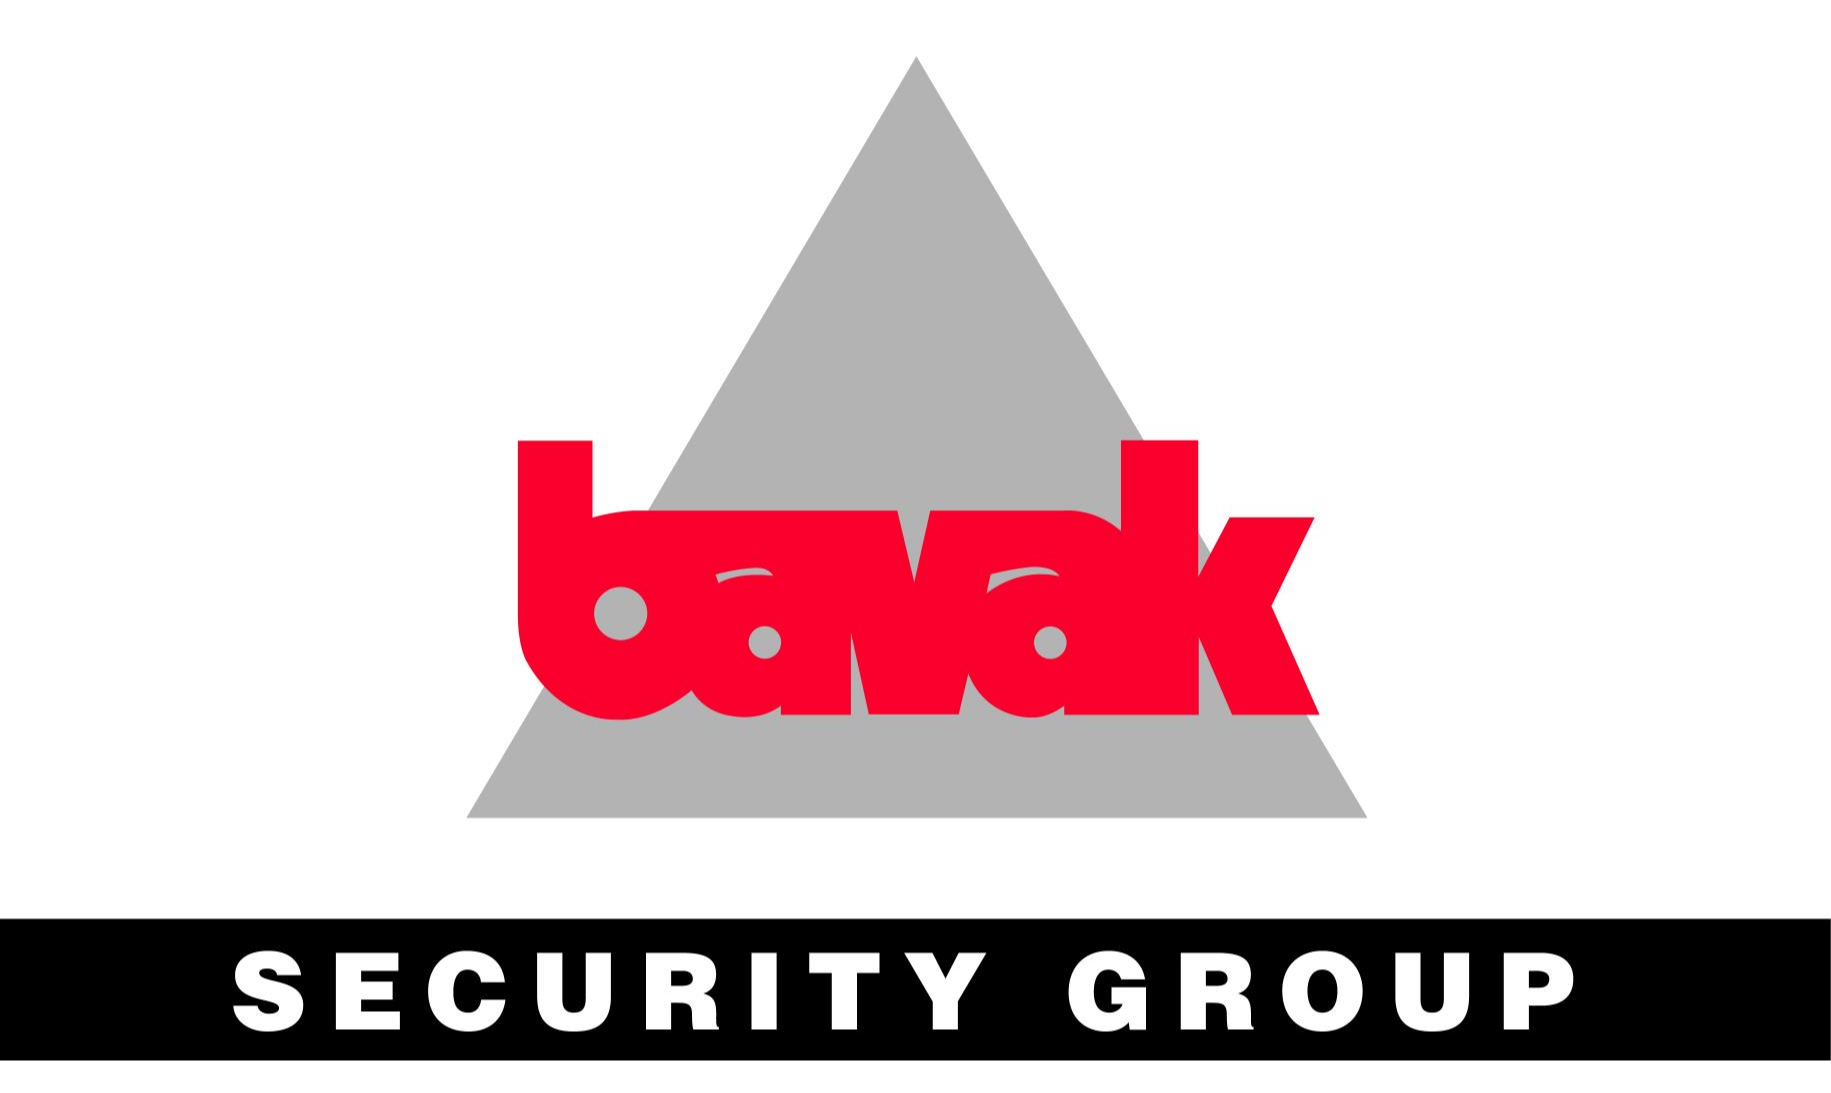 Bavak_Security_Group_vierkant.png